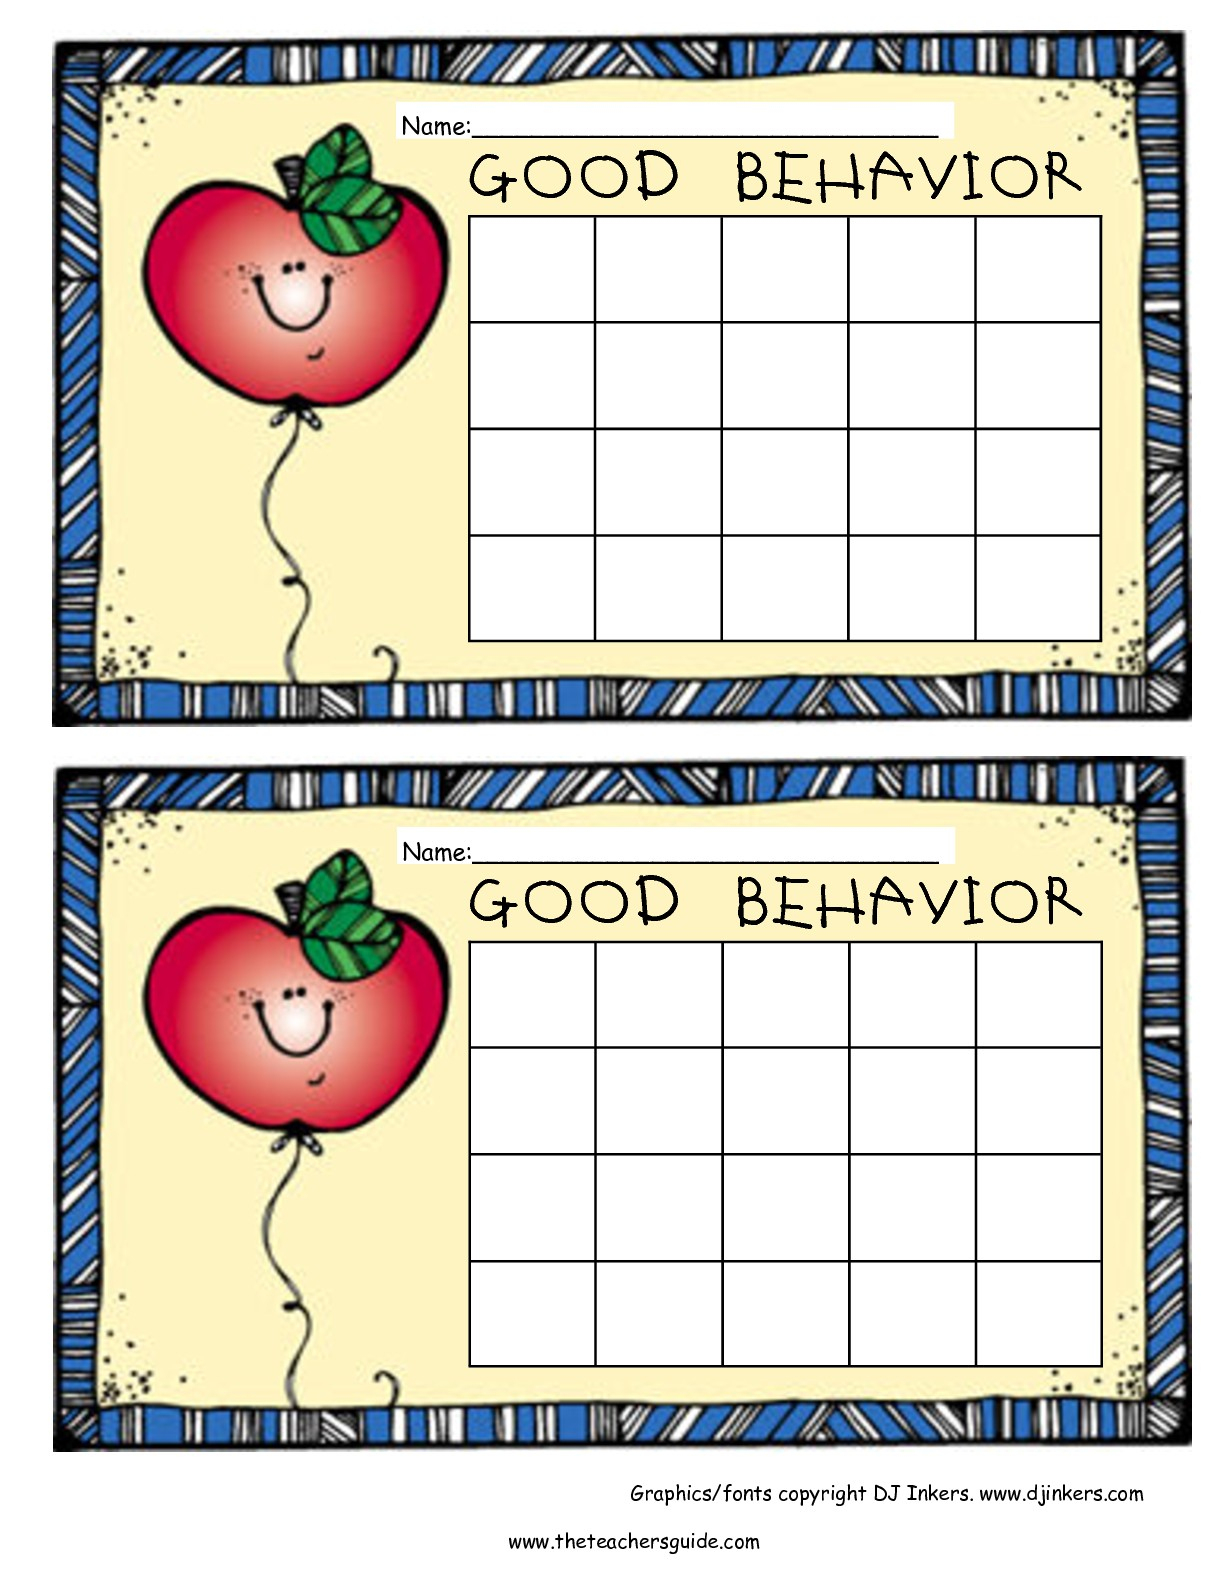 Free Printable Reward And Incentive Charts - Free Printable Sticker Charts